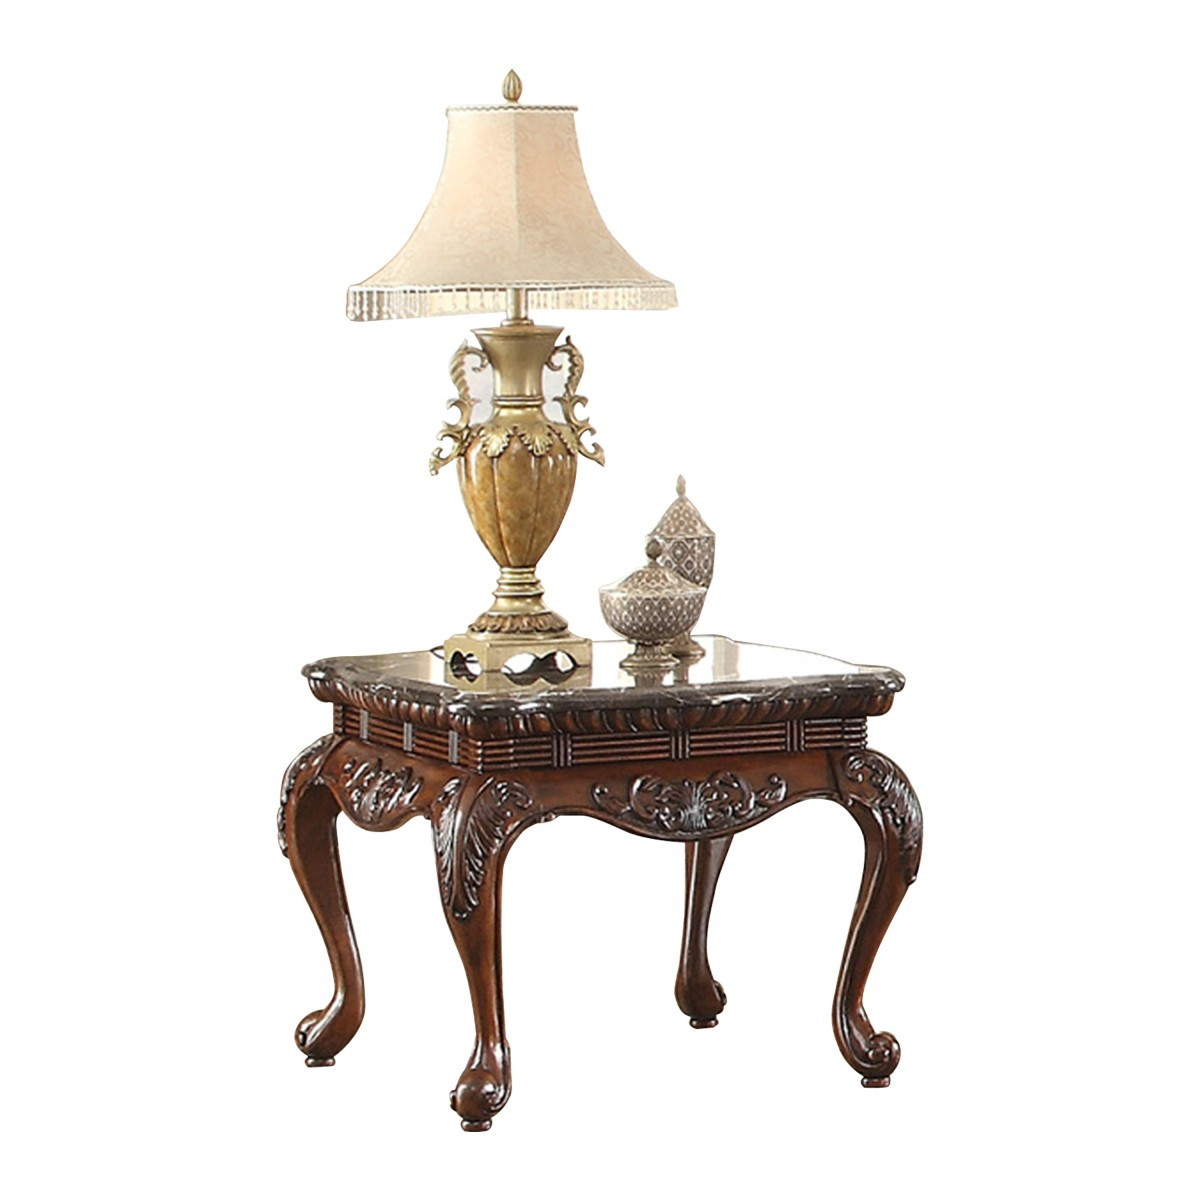 Homelegance HE-3526-04 Thibodaux marble top end table cherry finish wood trim